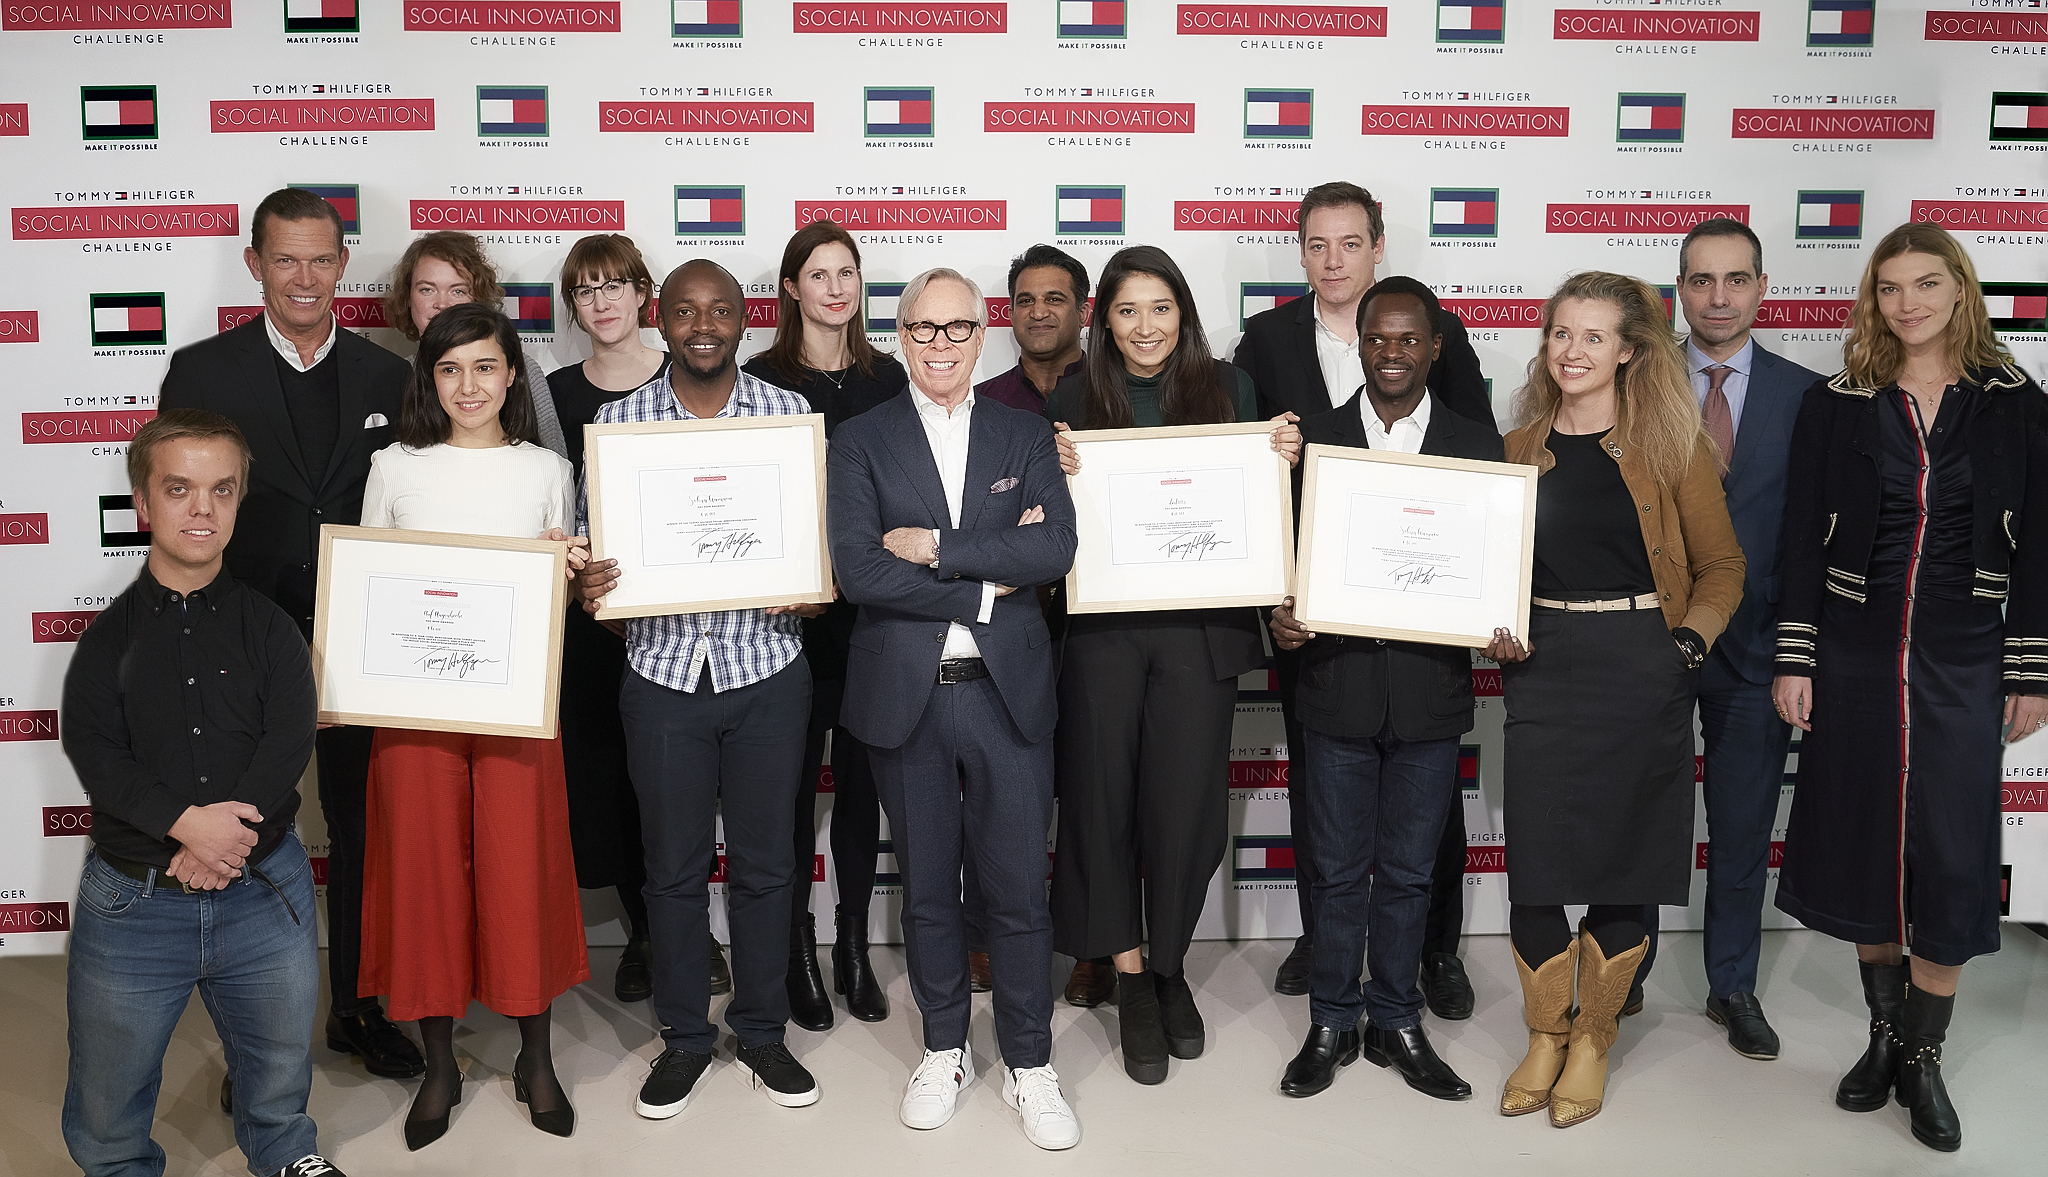 The prestigious jury panel and TOMMY HILFIGER Social Innovation Challeng... (1).jpg